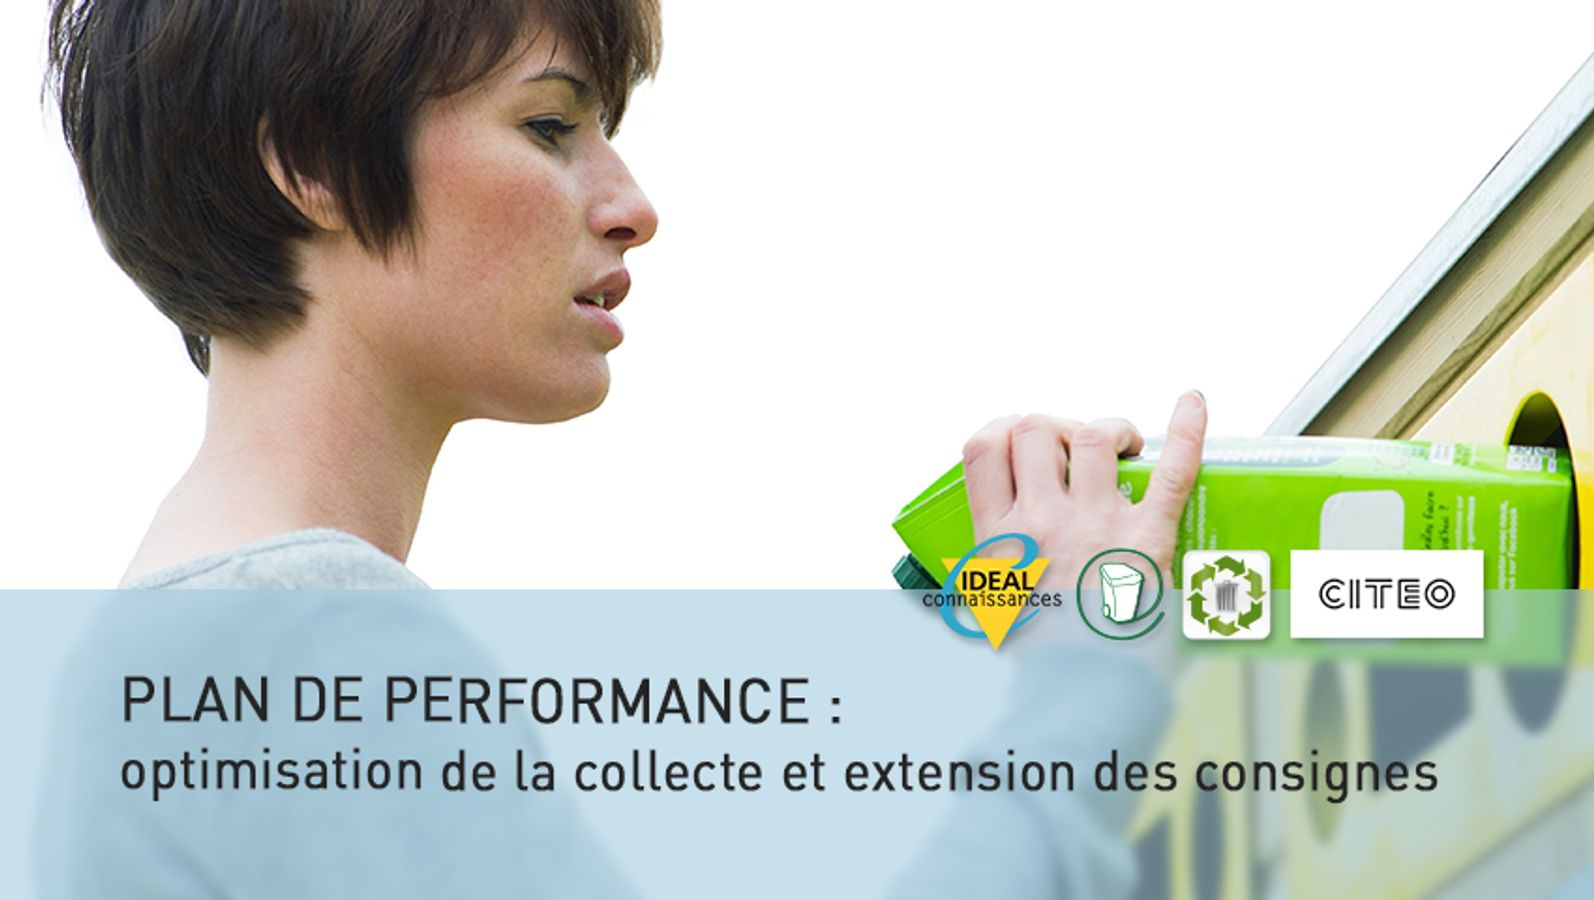 PLAN DE PERFORMANCE : optimisation de la collecte et extension des consignes